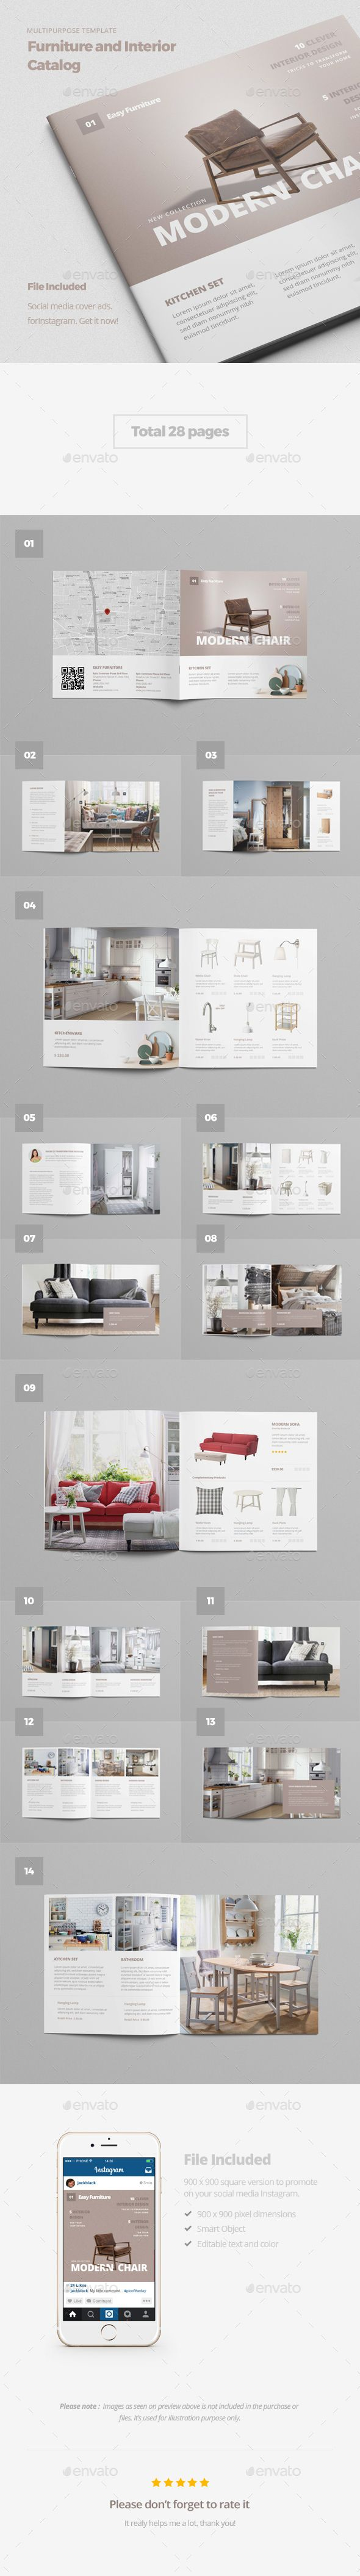 Furniture and Interior Catalog Brochure Template PSD #design Download…